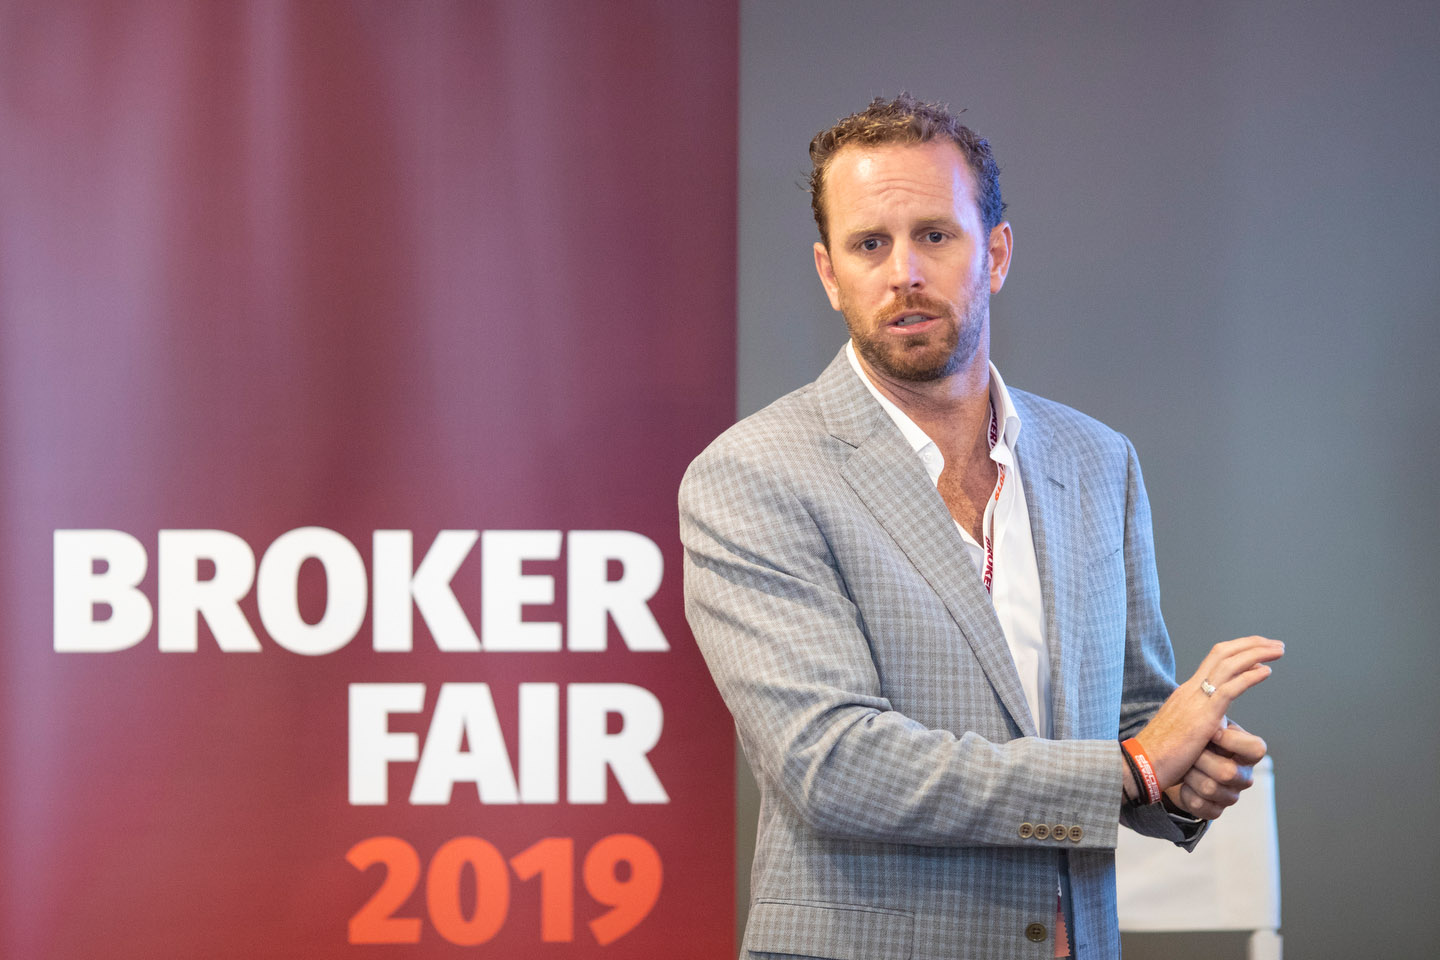 Broker Fair 2019 - Presented by deBanked - 513